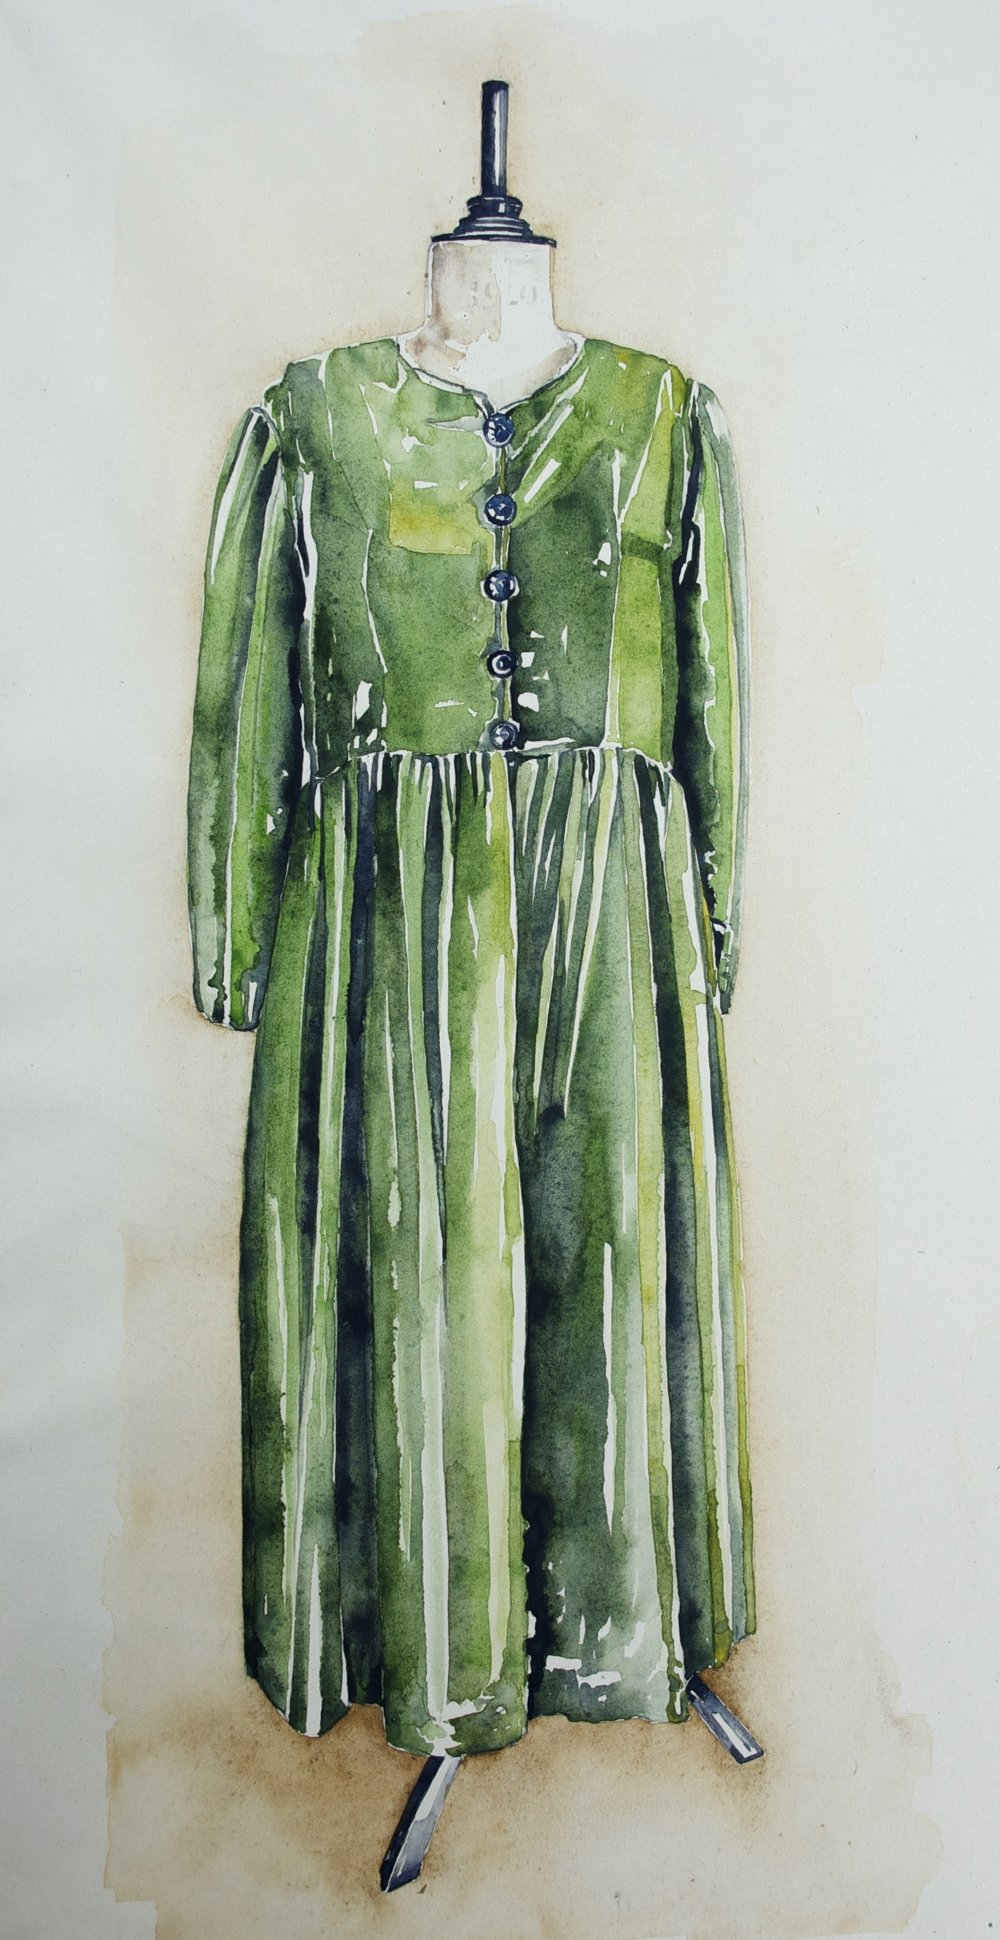 The Green Dress. Watercolour